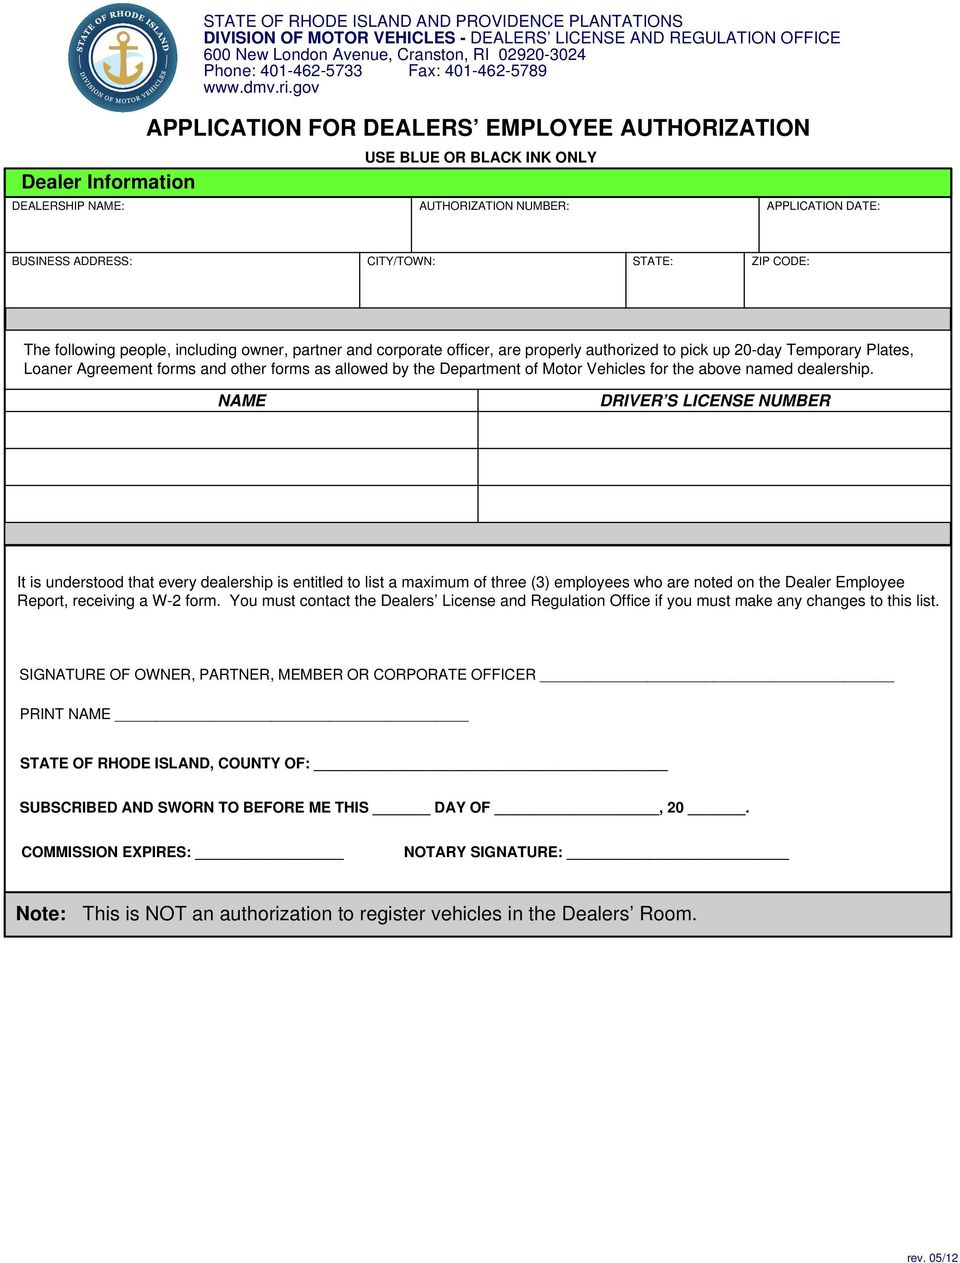 INSTRUCTIONS FOR APPLICATION FOR NEW DEALERSHIP - PDF